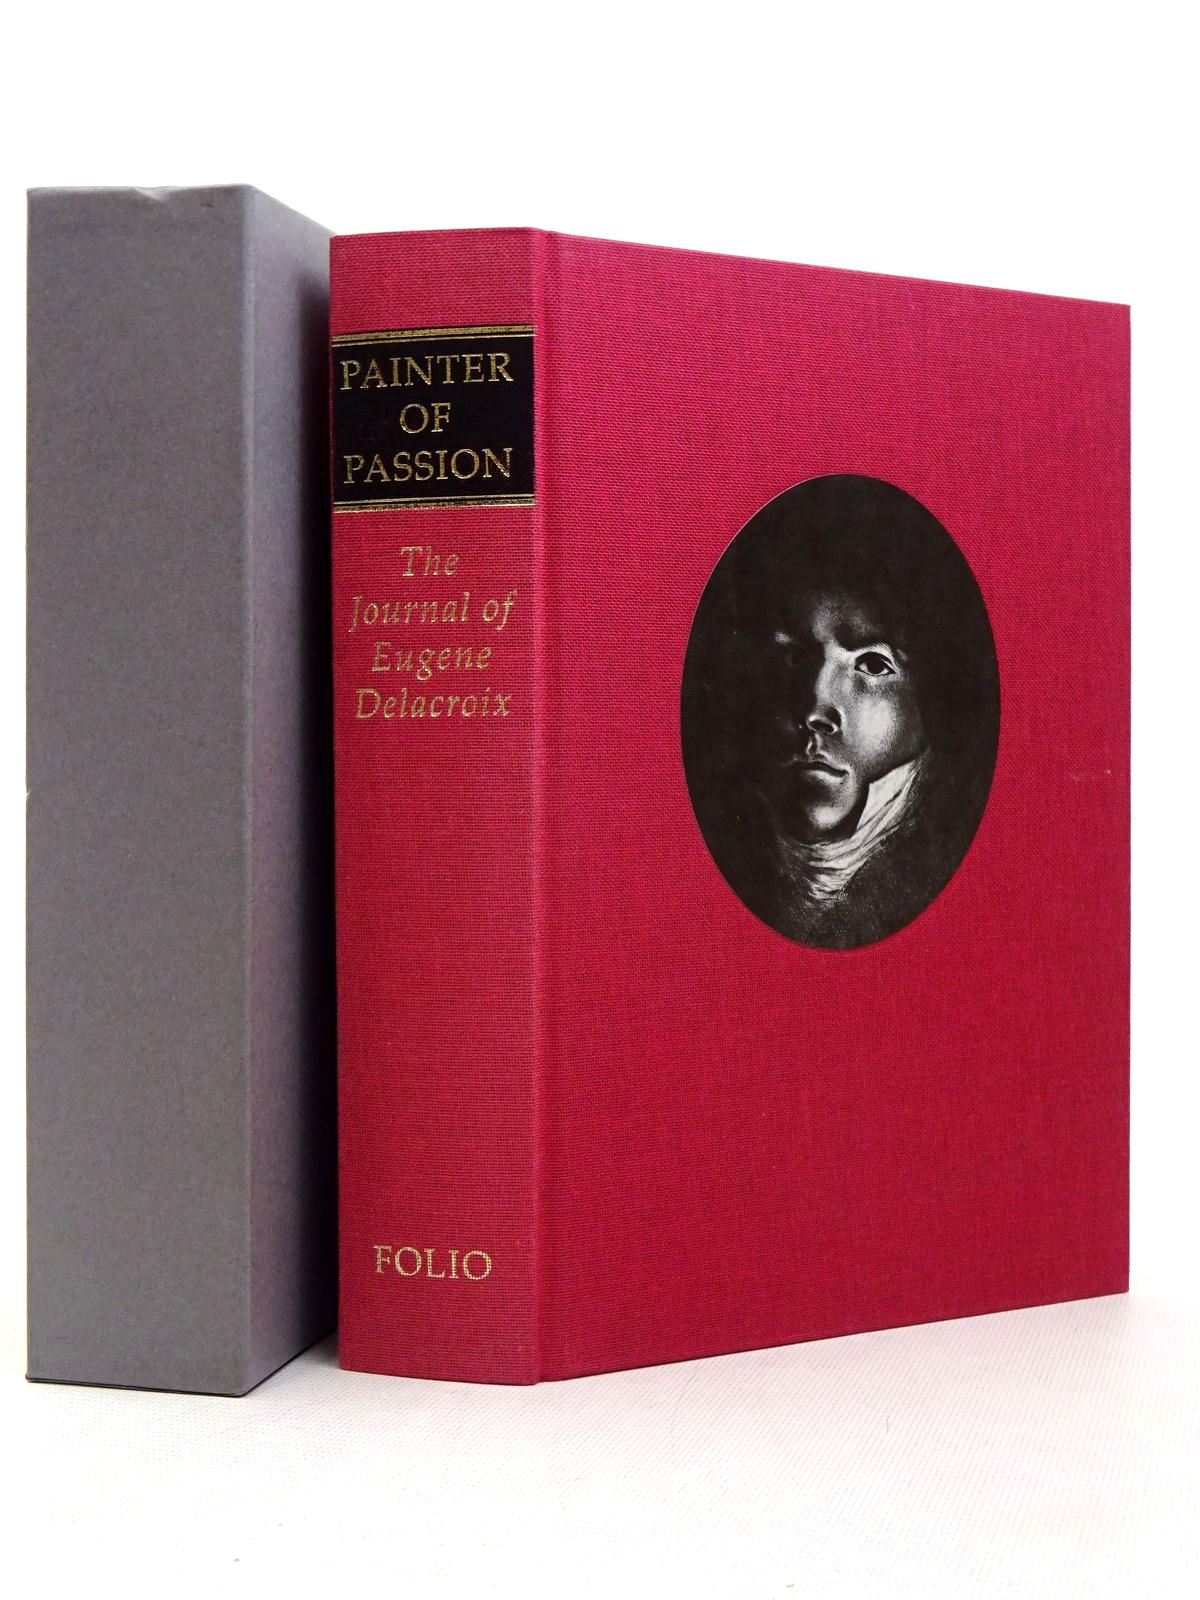 Photo of PAINTER OF PASSION: THE JOURNAL OF EUGENE DELACROIX written by Delacroix, Eugene Wellington, Hubert published by Folio Society (STOCK CODE: 1817282)  for sale by Stella & Rose's Books